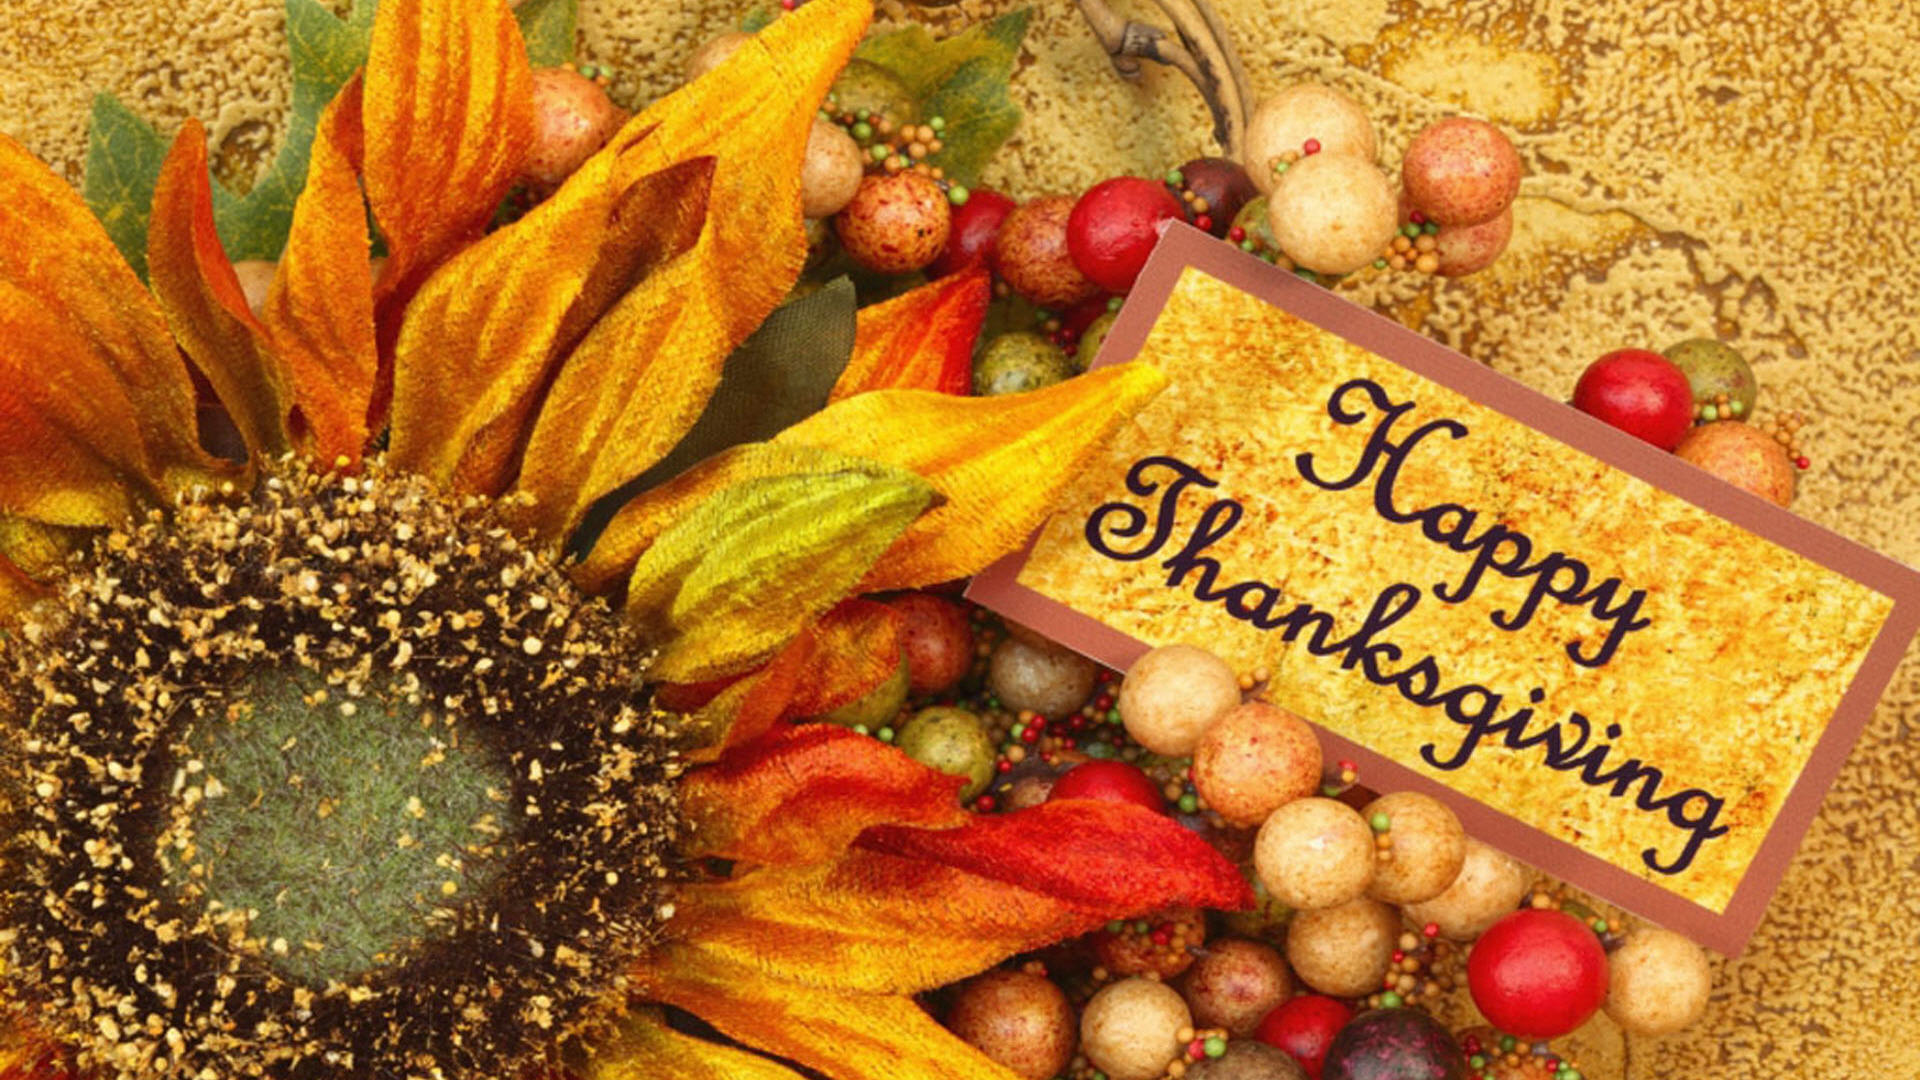 free desktop wallpaper for thanksgiving 1600a—1200